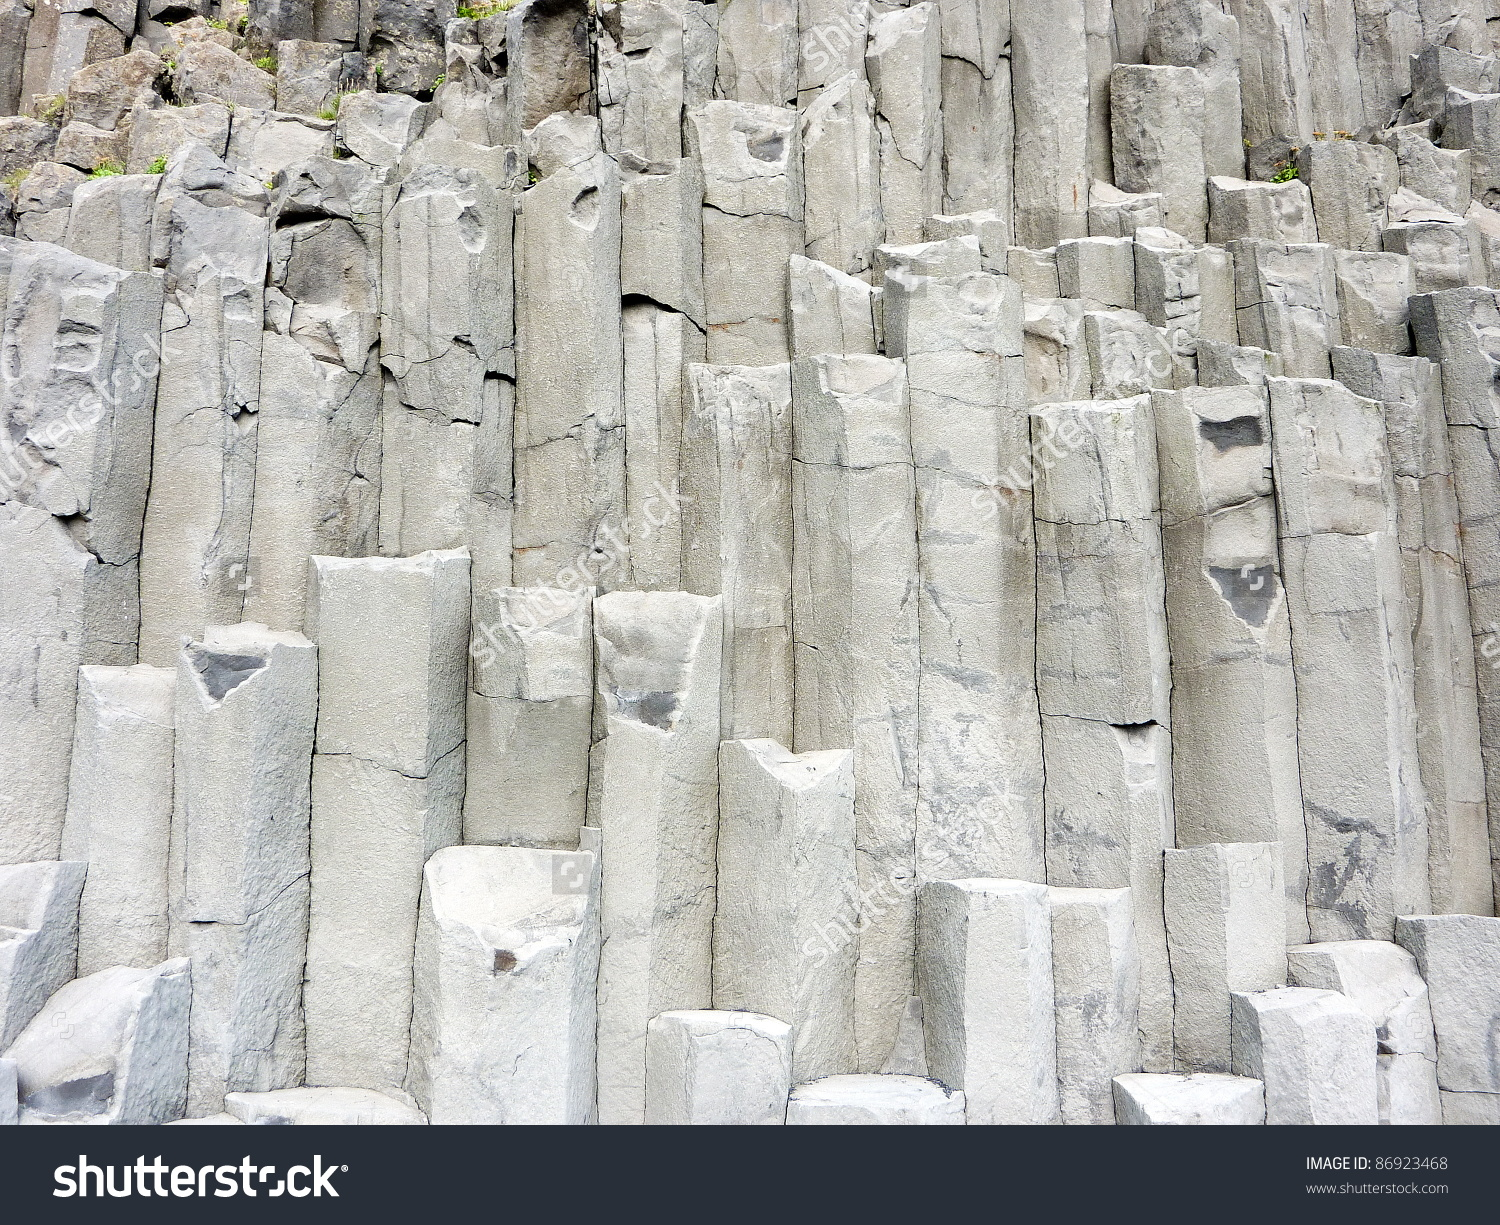 Gray Basalt Column Formation Rocks Iceland Stock Photo 86923468.